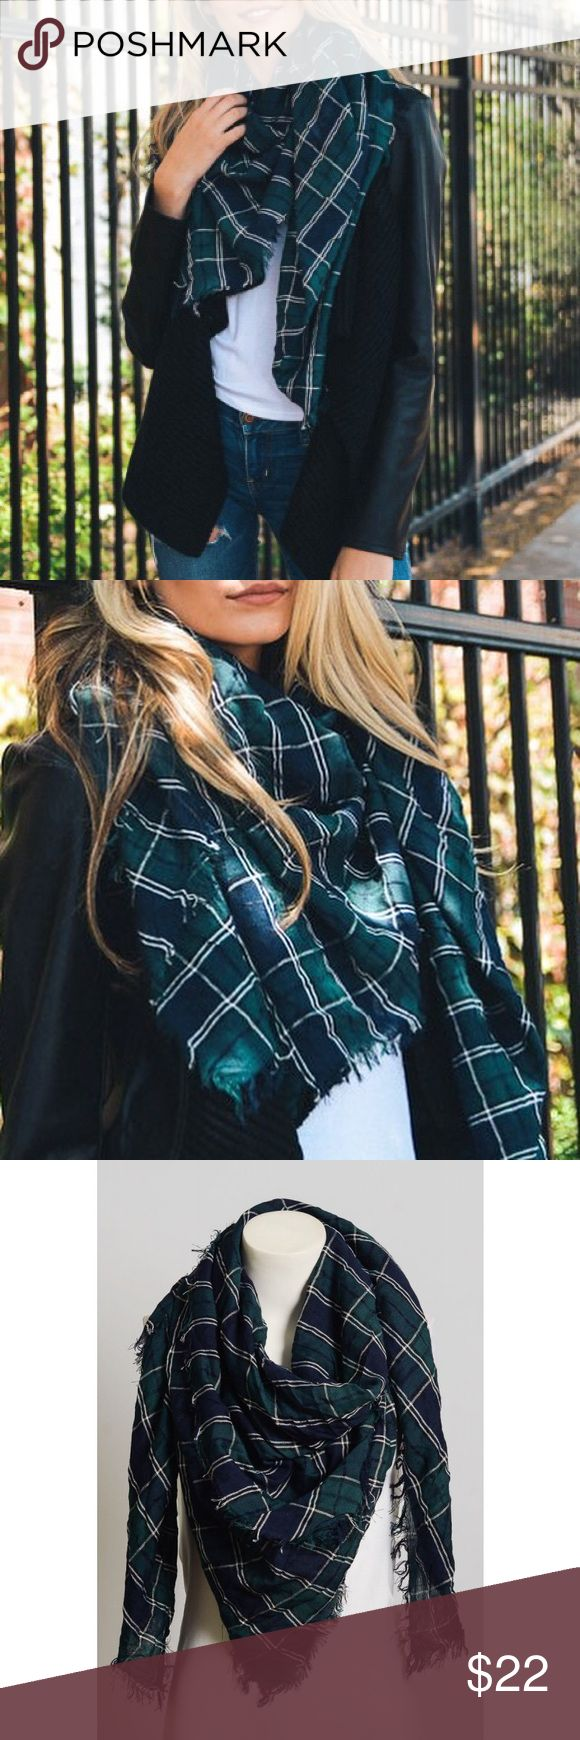 """Crinkled Plaid Scarf Perfect addition to any outfit. Crinkled tartan plaid frayed edge scarf. Made of viscose material. Measurements 57"""" X 57"""" Bchic Accessories Scarves & Wraps"""